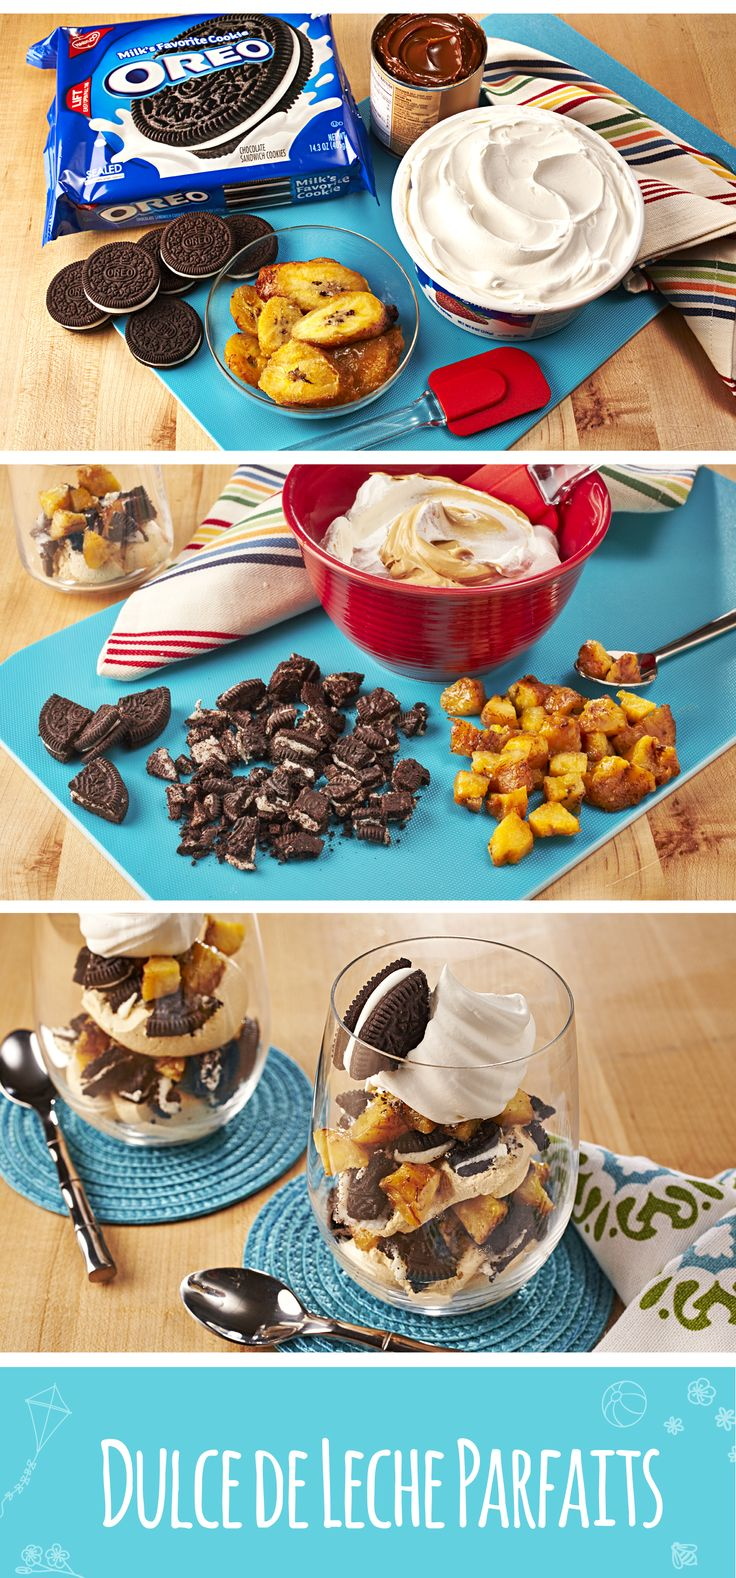 Nothing could be sweeter than the sonrisas on your kids' faces when they dig into this special postre for Día del Niño! Blend Mexican caramel spread (dulce de leche) and stir in whipped topping in a medium bowl. Cut and chop cookies and frozen ripe plantains (maduros). Layer 6 parfait glasses with half of each of the whipped topping mixture, chopped cookies and plantains. Repeat layers and top with remaining whipped topping. Garnish with quartered cookie pieces. #ad #ConMasSabor